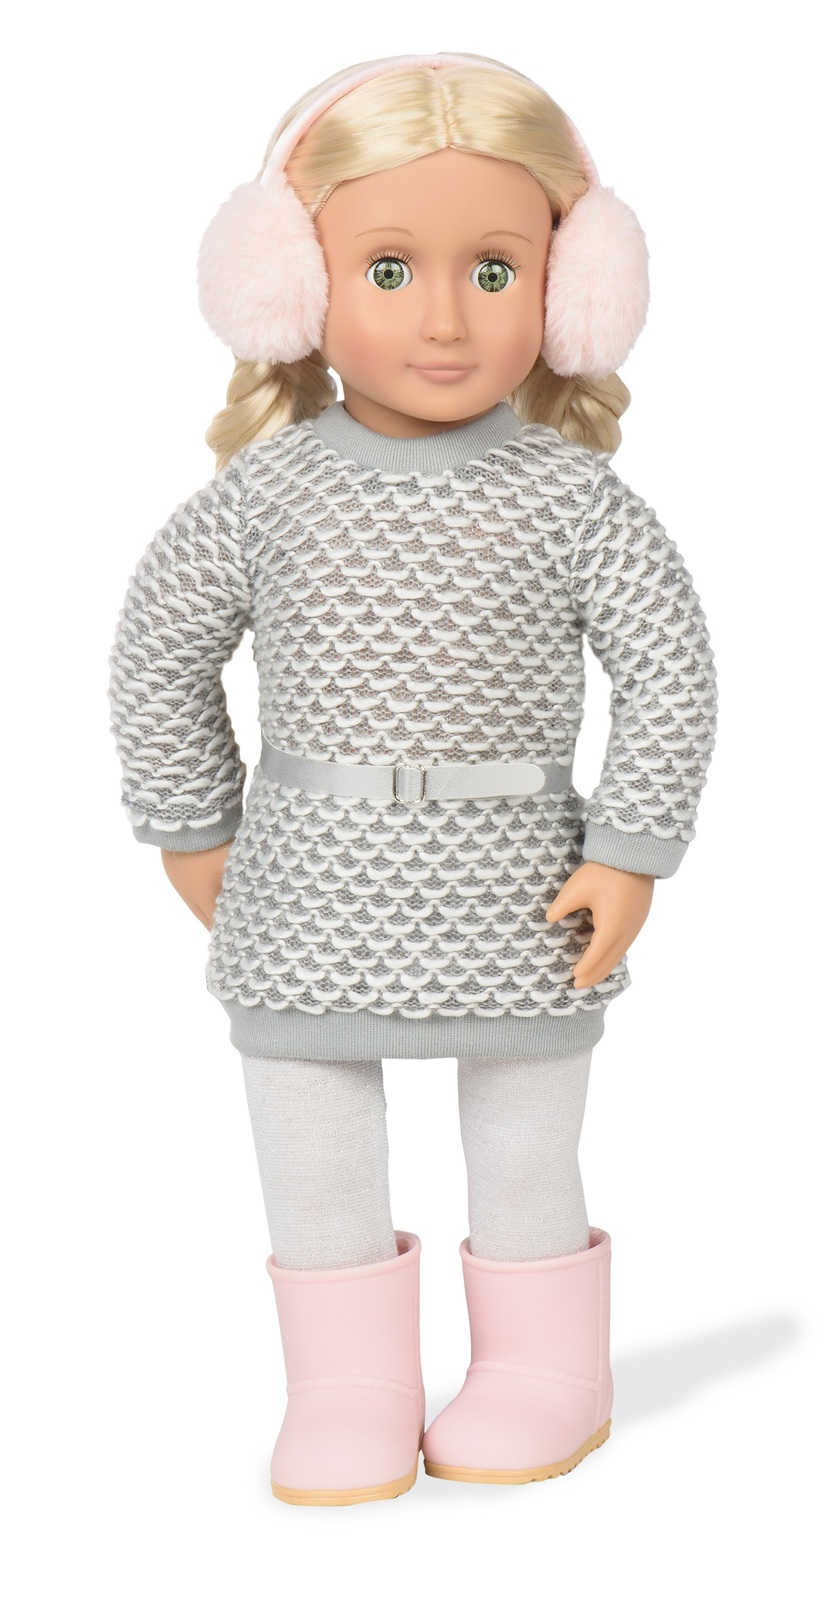 Our Generation: Regular Outfit - Sweater Dress image